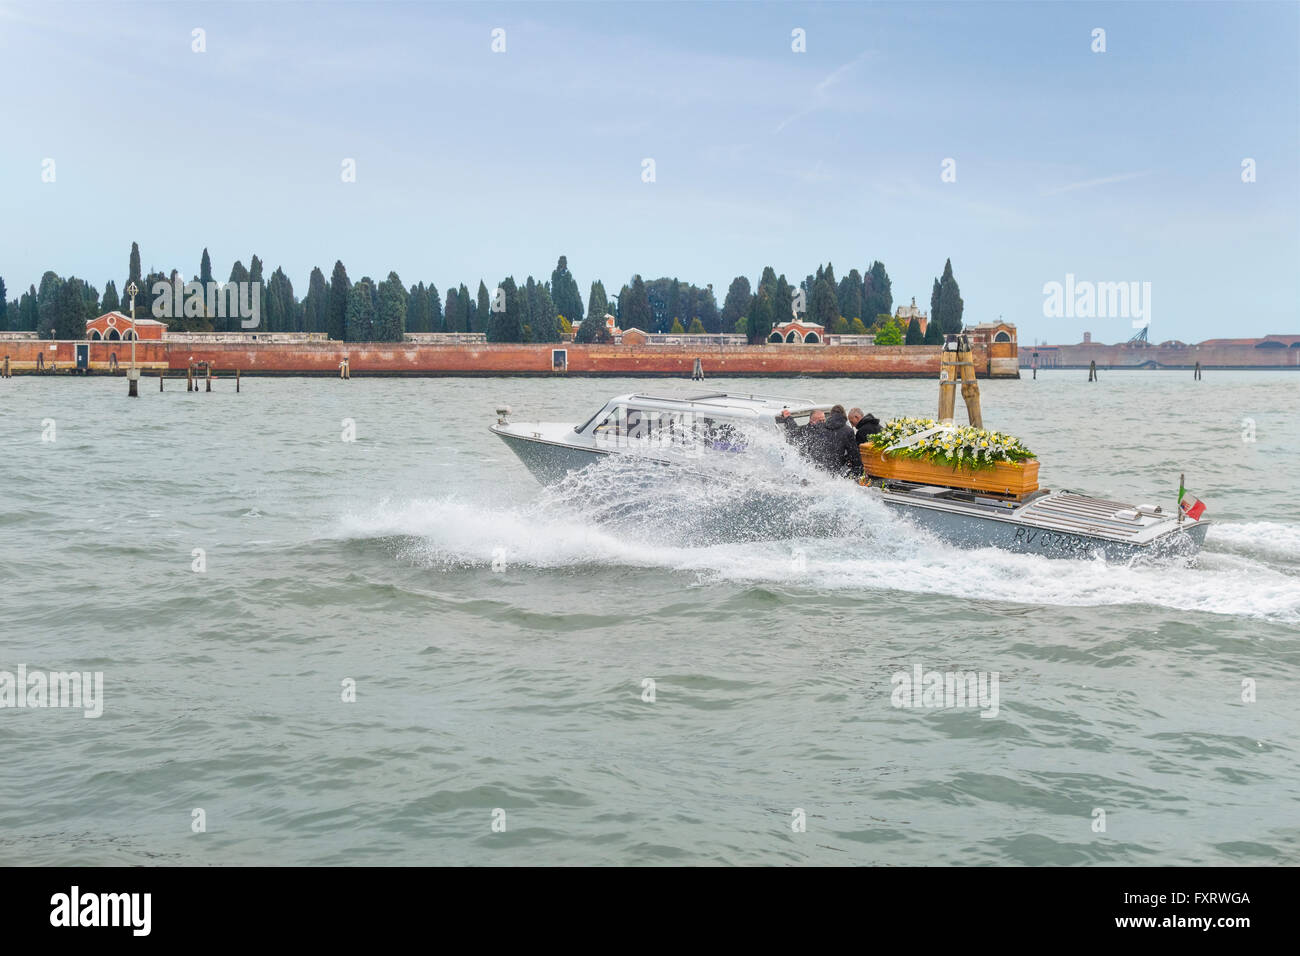 Venice, Italy. Water hearse or funerary, funeral boat on it's way to Venice's cemetery on Isola di San Michele - Stock Image